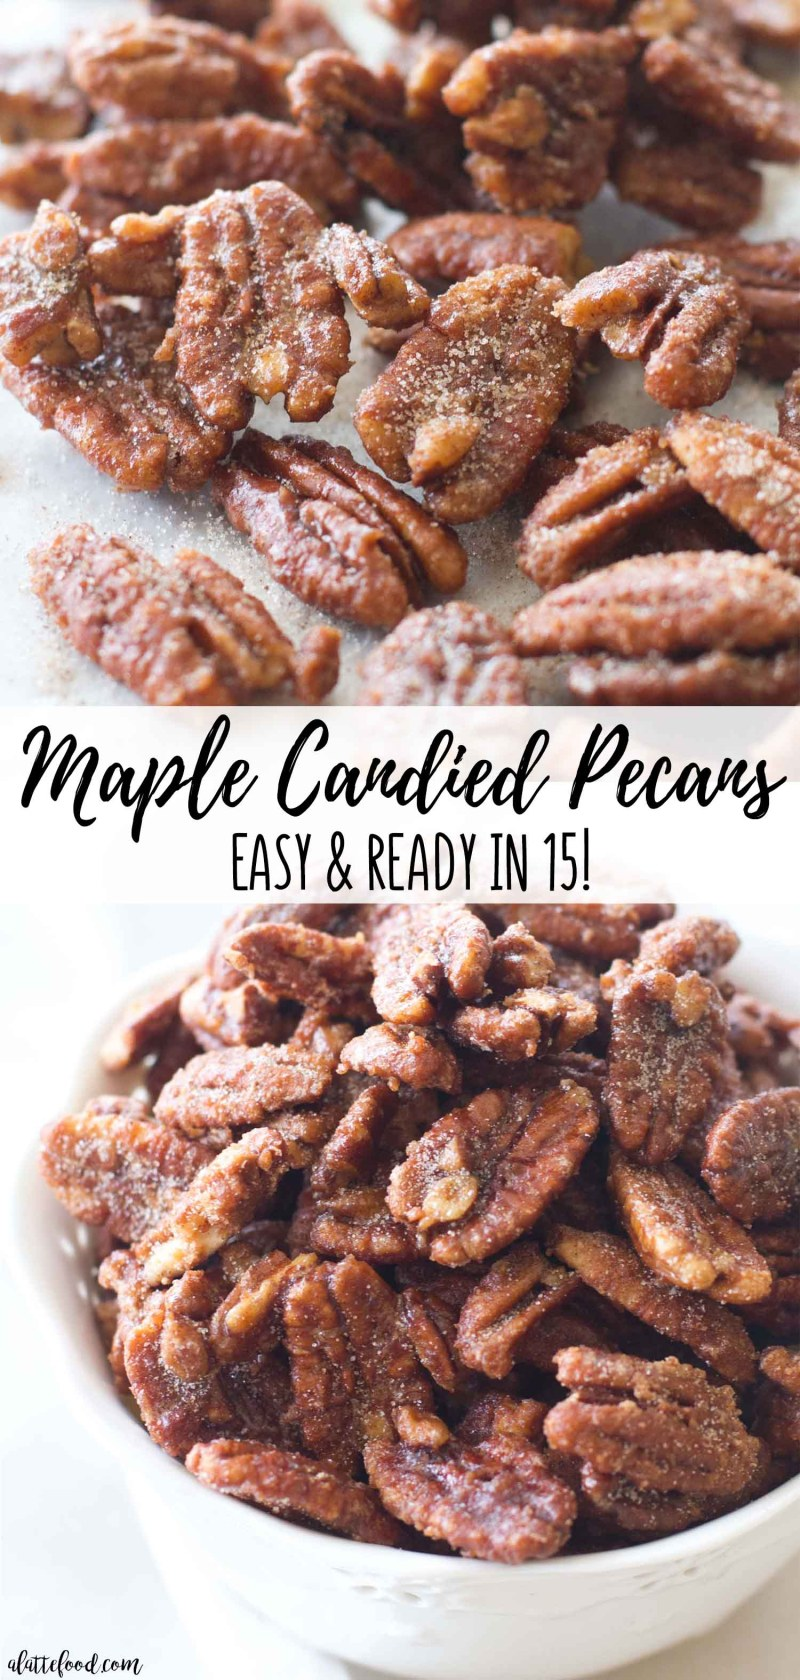 Easy Candied Pecans get kicked up a notch with fall flavors! Maple Candied Pecans are an easy fall dessert.